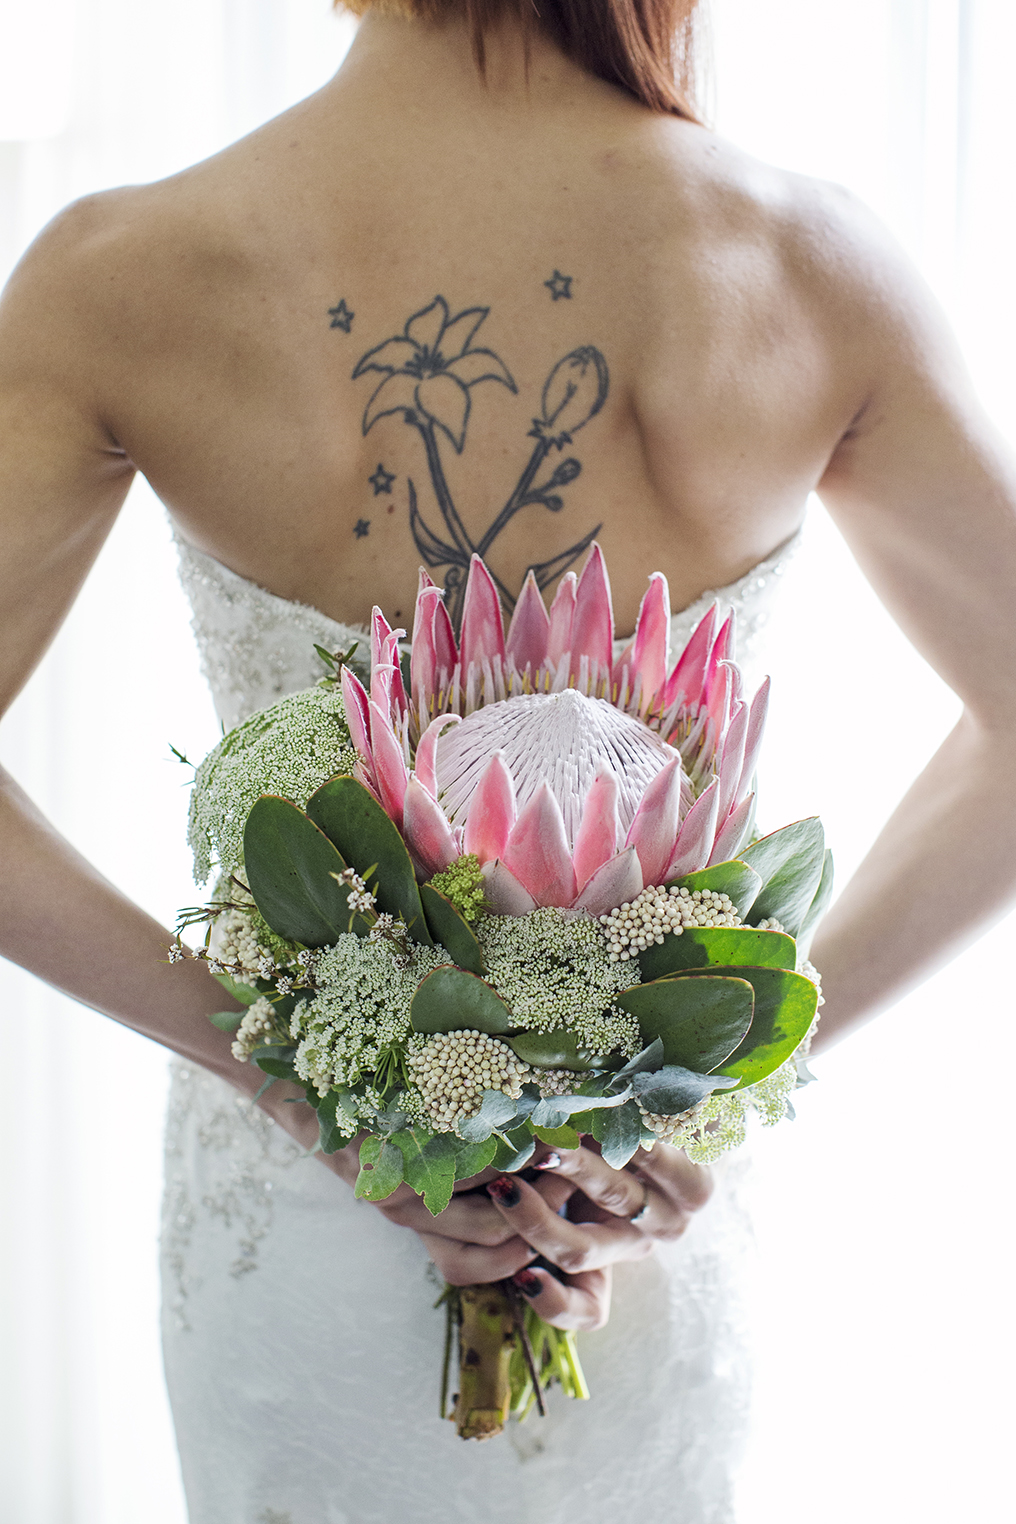 Majestic Rooftop Adelaide Wedding Photography 02 Flowers and back tattoo.jpg